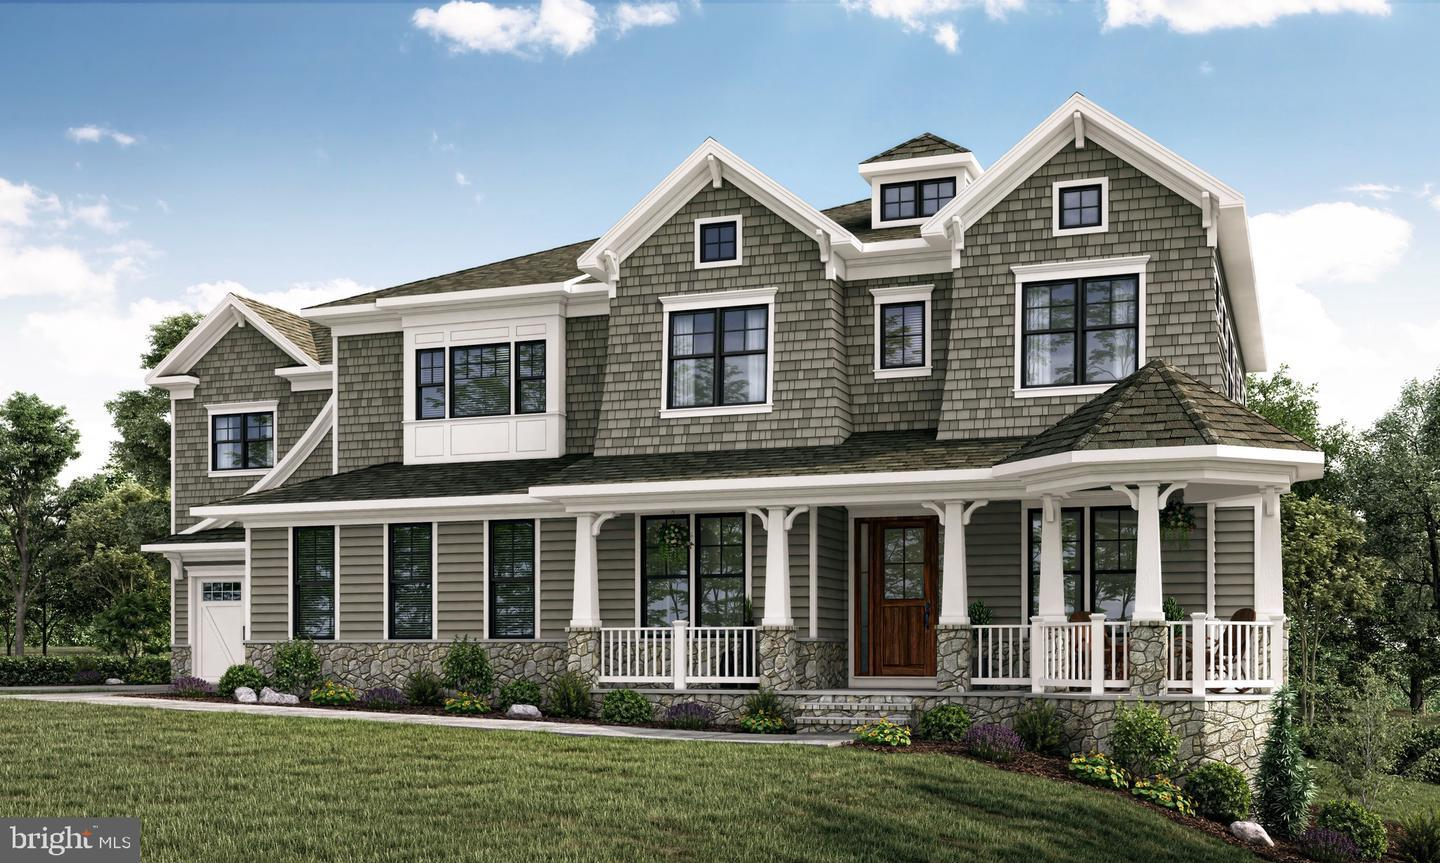 JUST SOLD: Marvelous New-Construction Home in Whitehall Manor